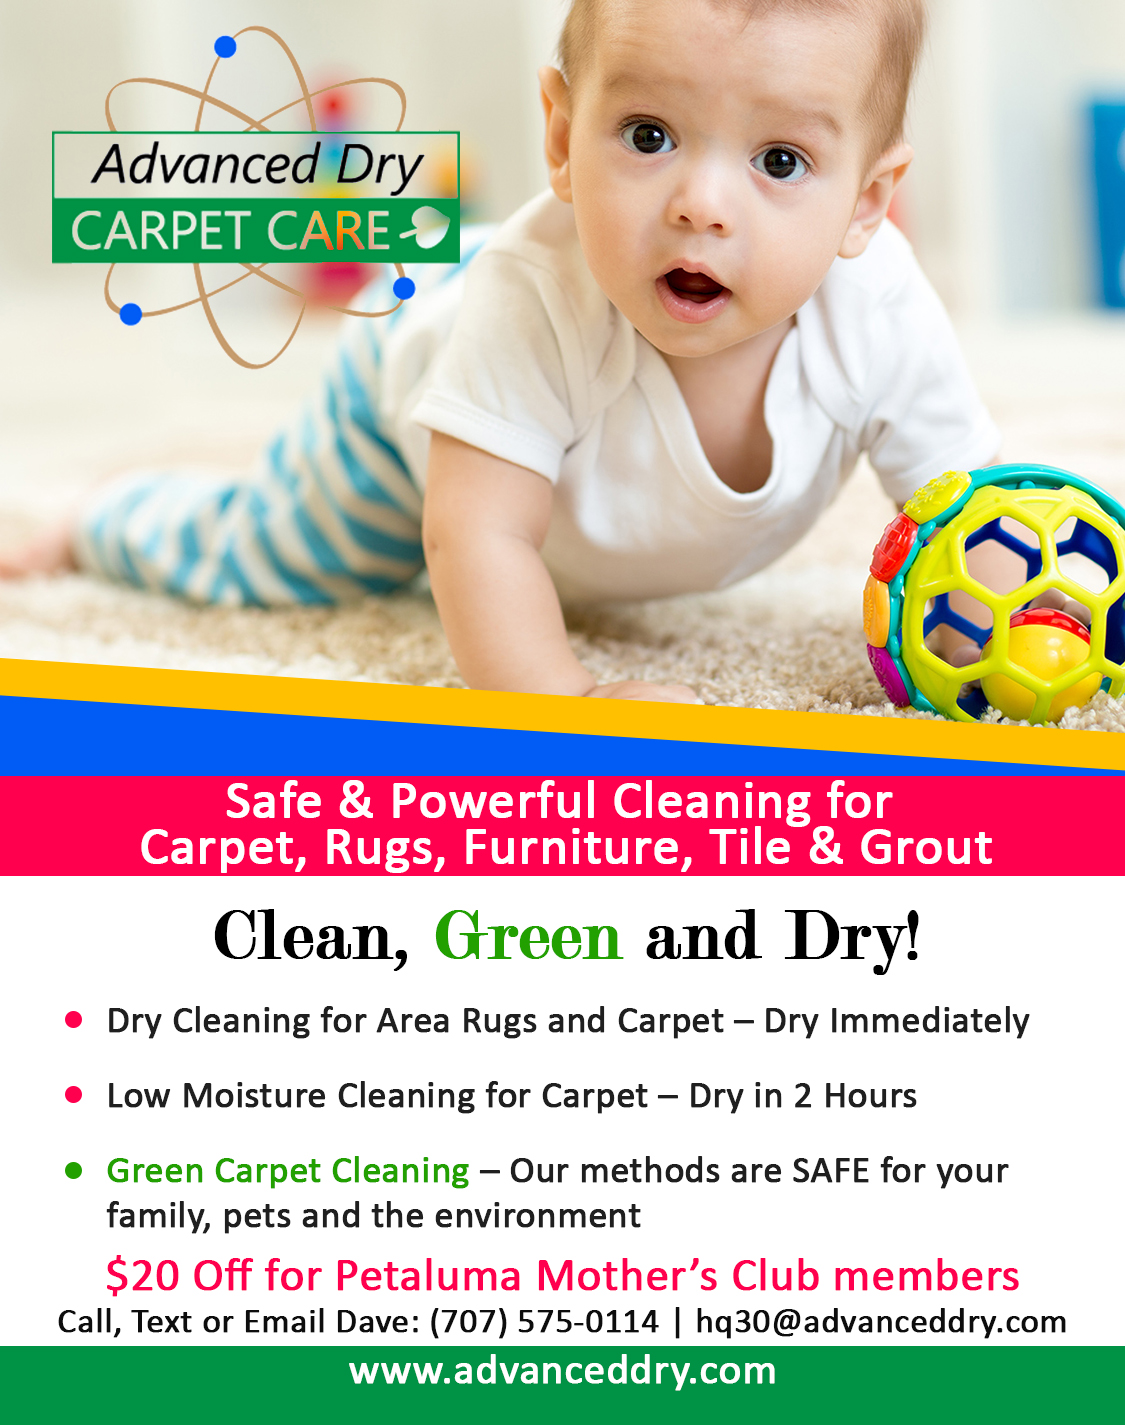 Petaluma Mother's Club Ad for Advanced Dry Carpet Care Petaluma